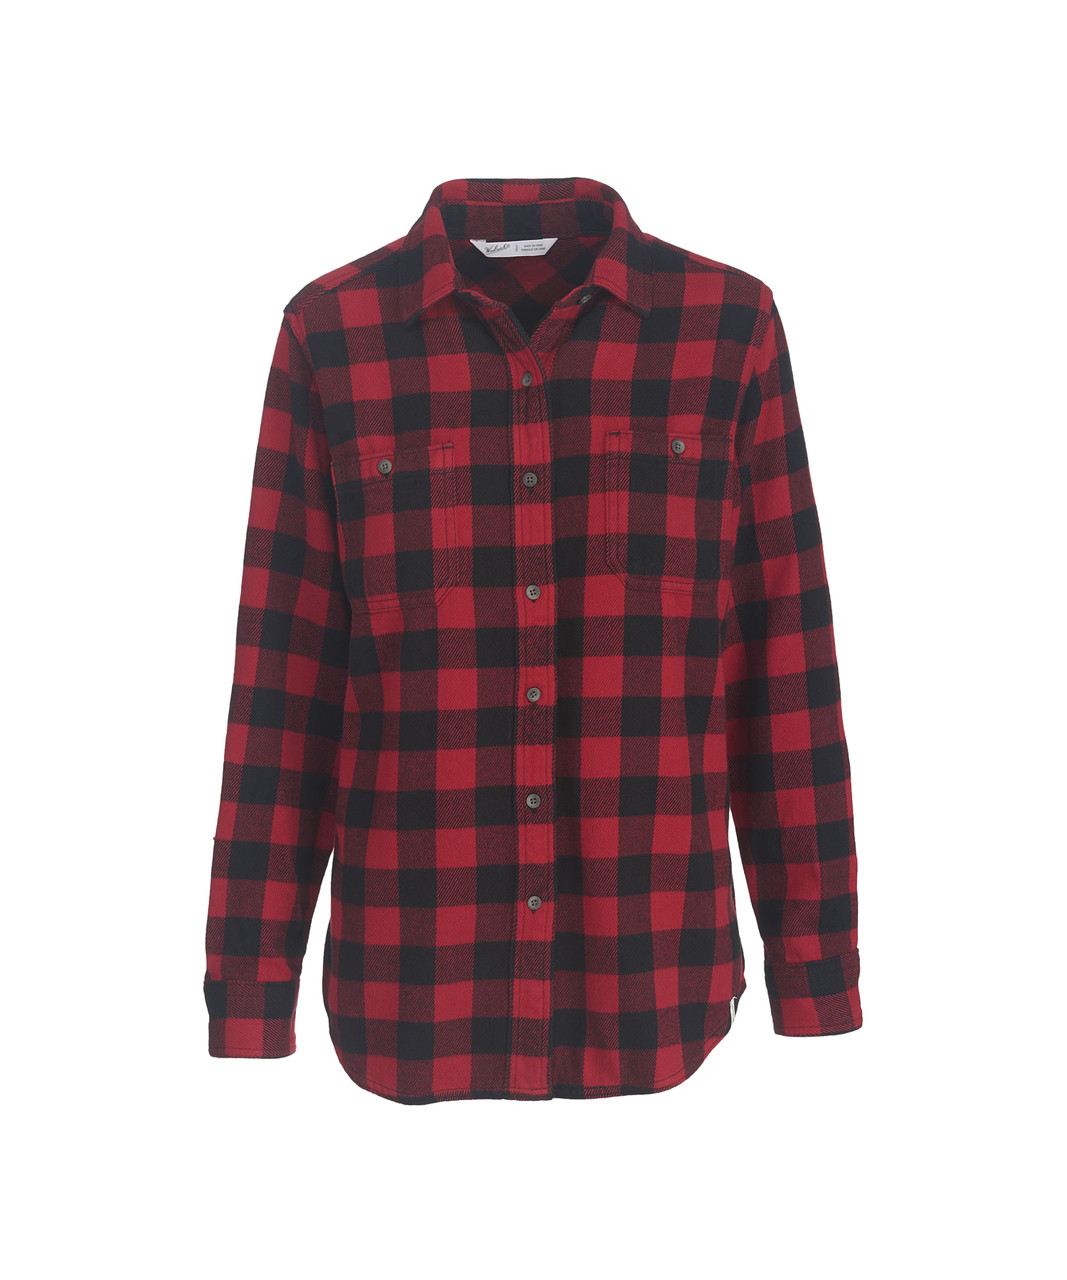 Women s Buffalo Check Flannel Shirt - Woolrich 144d1937215